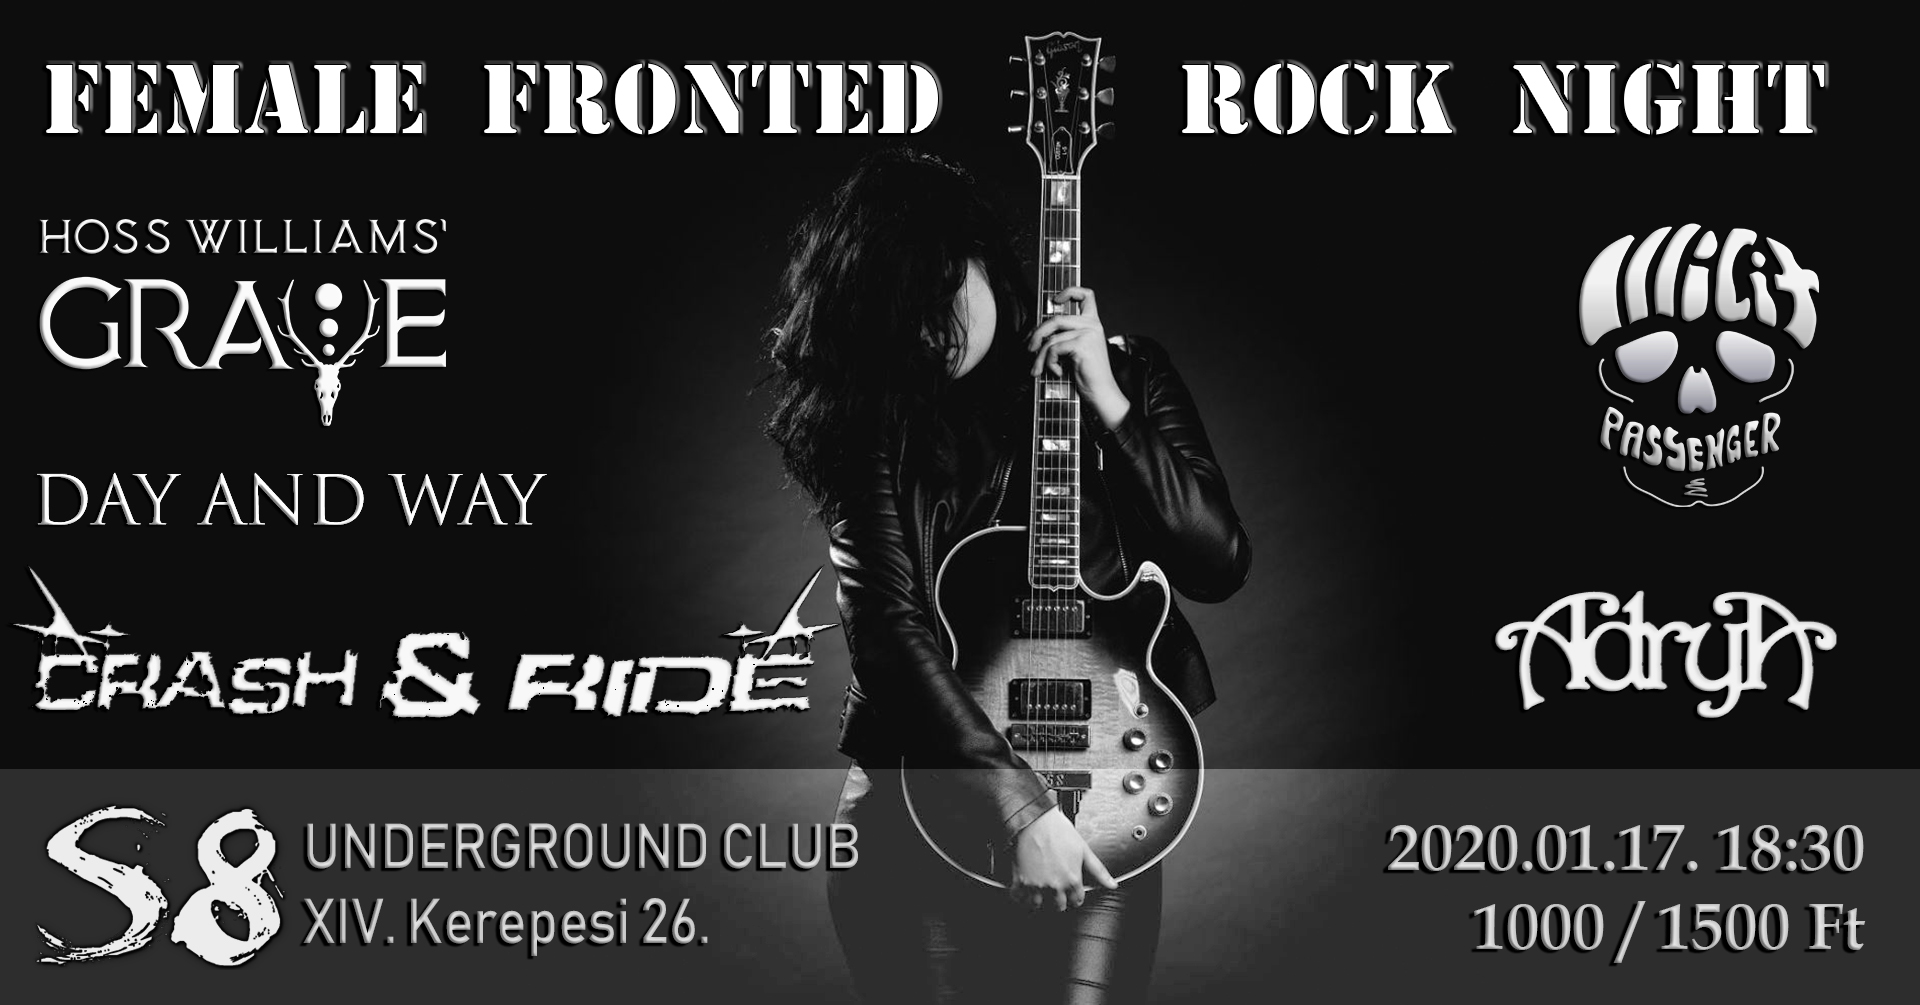 Female Fronted Rock Night